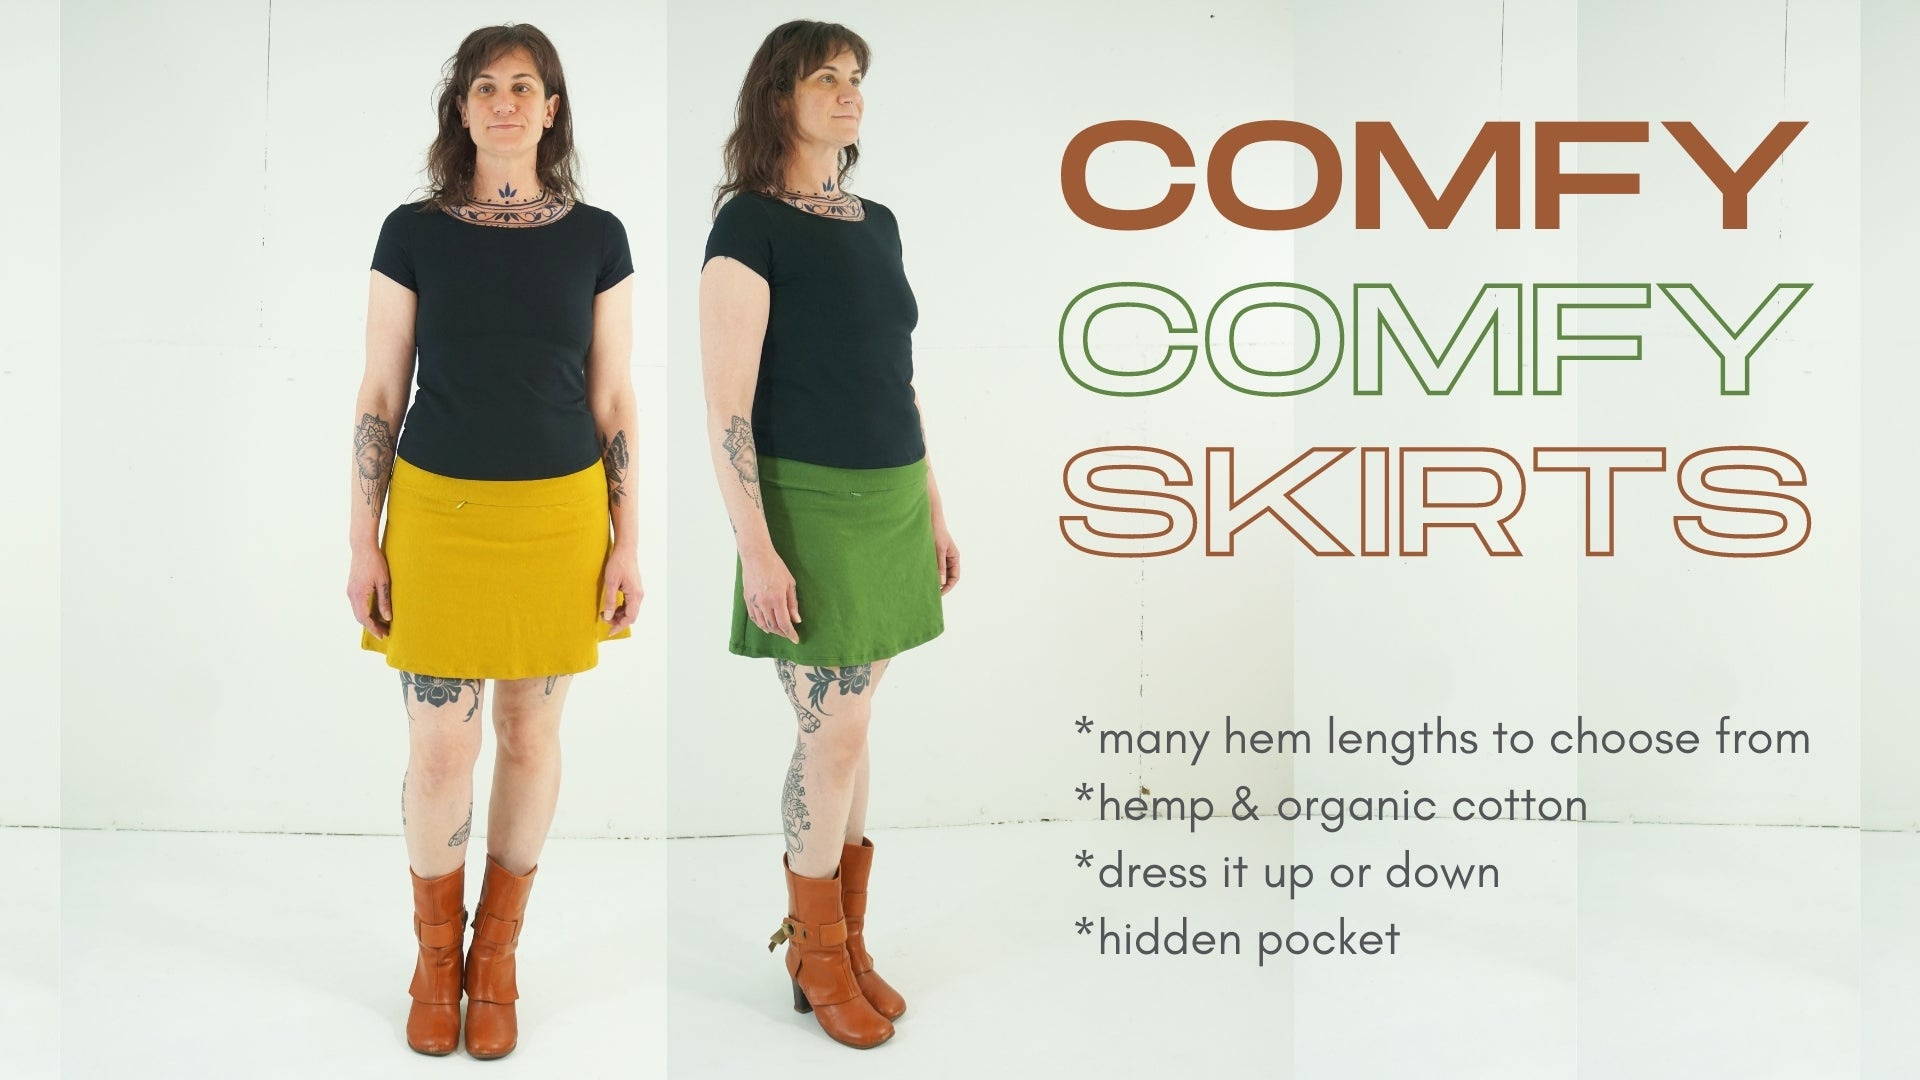 eco conscious organic & hemp clothing